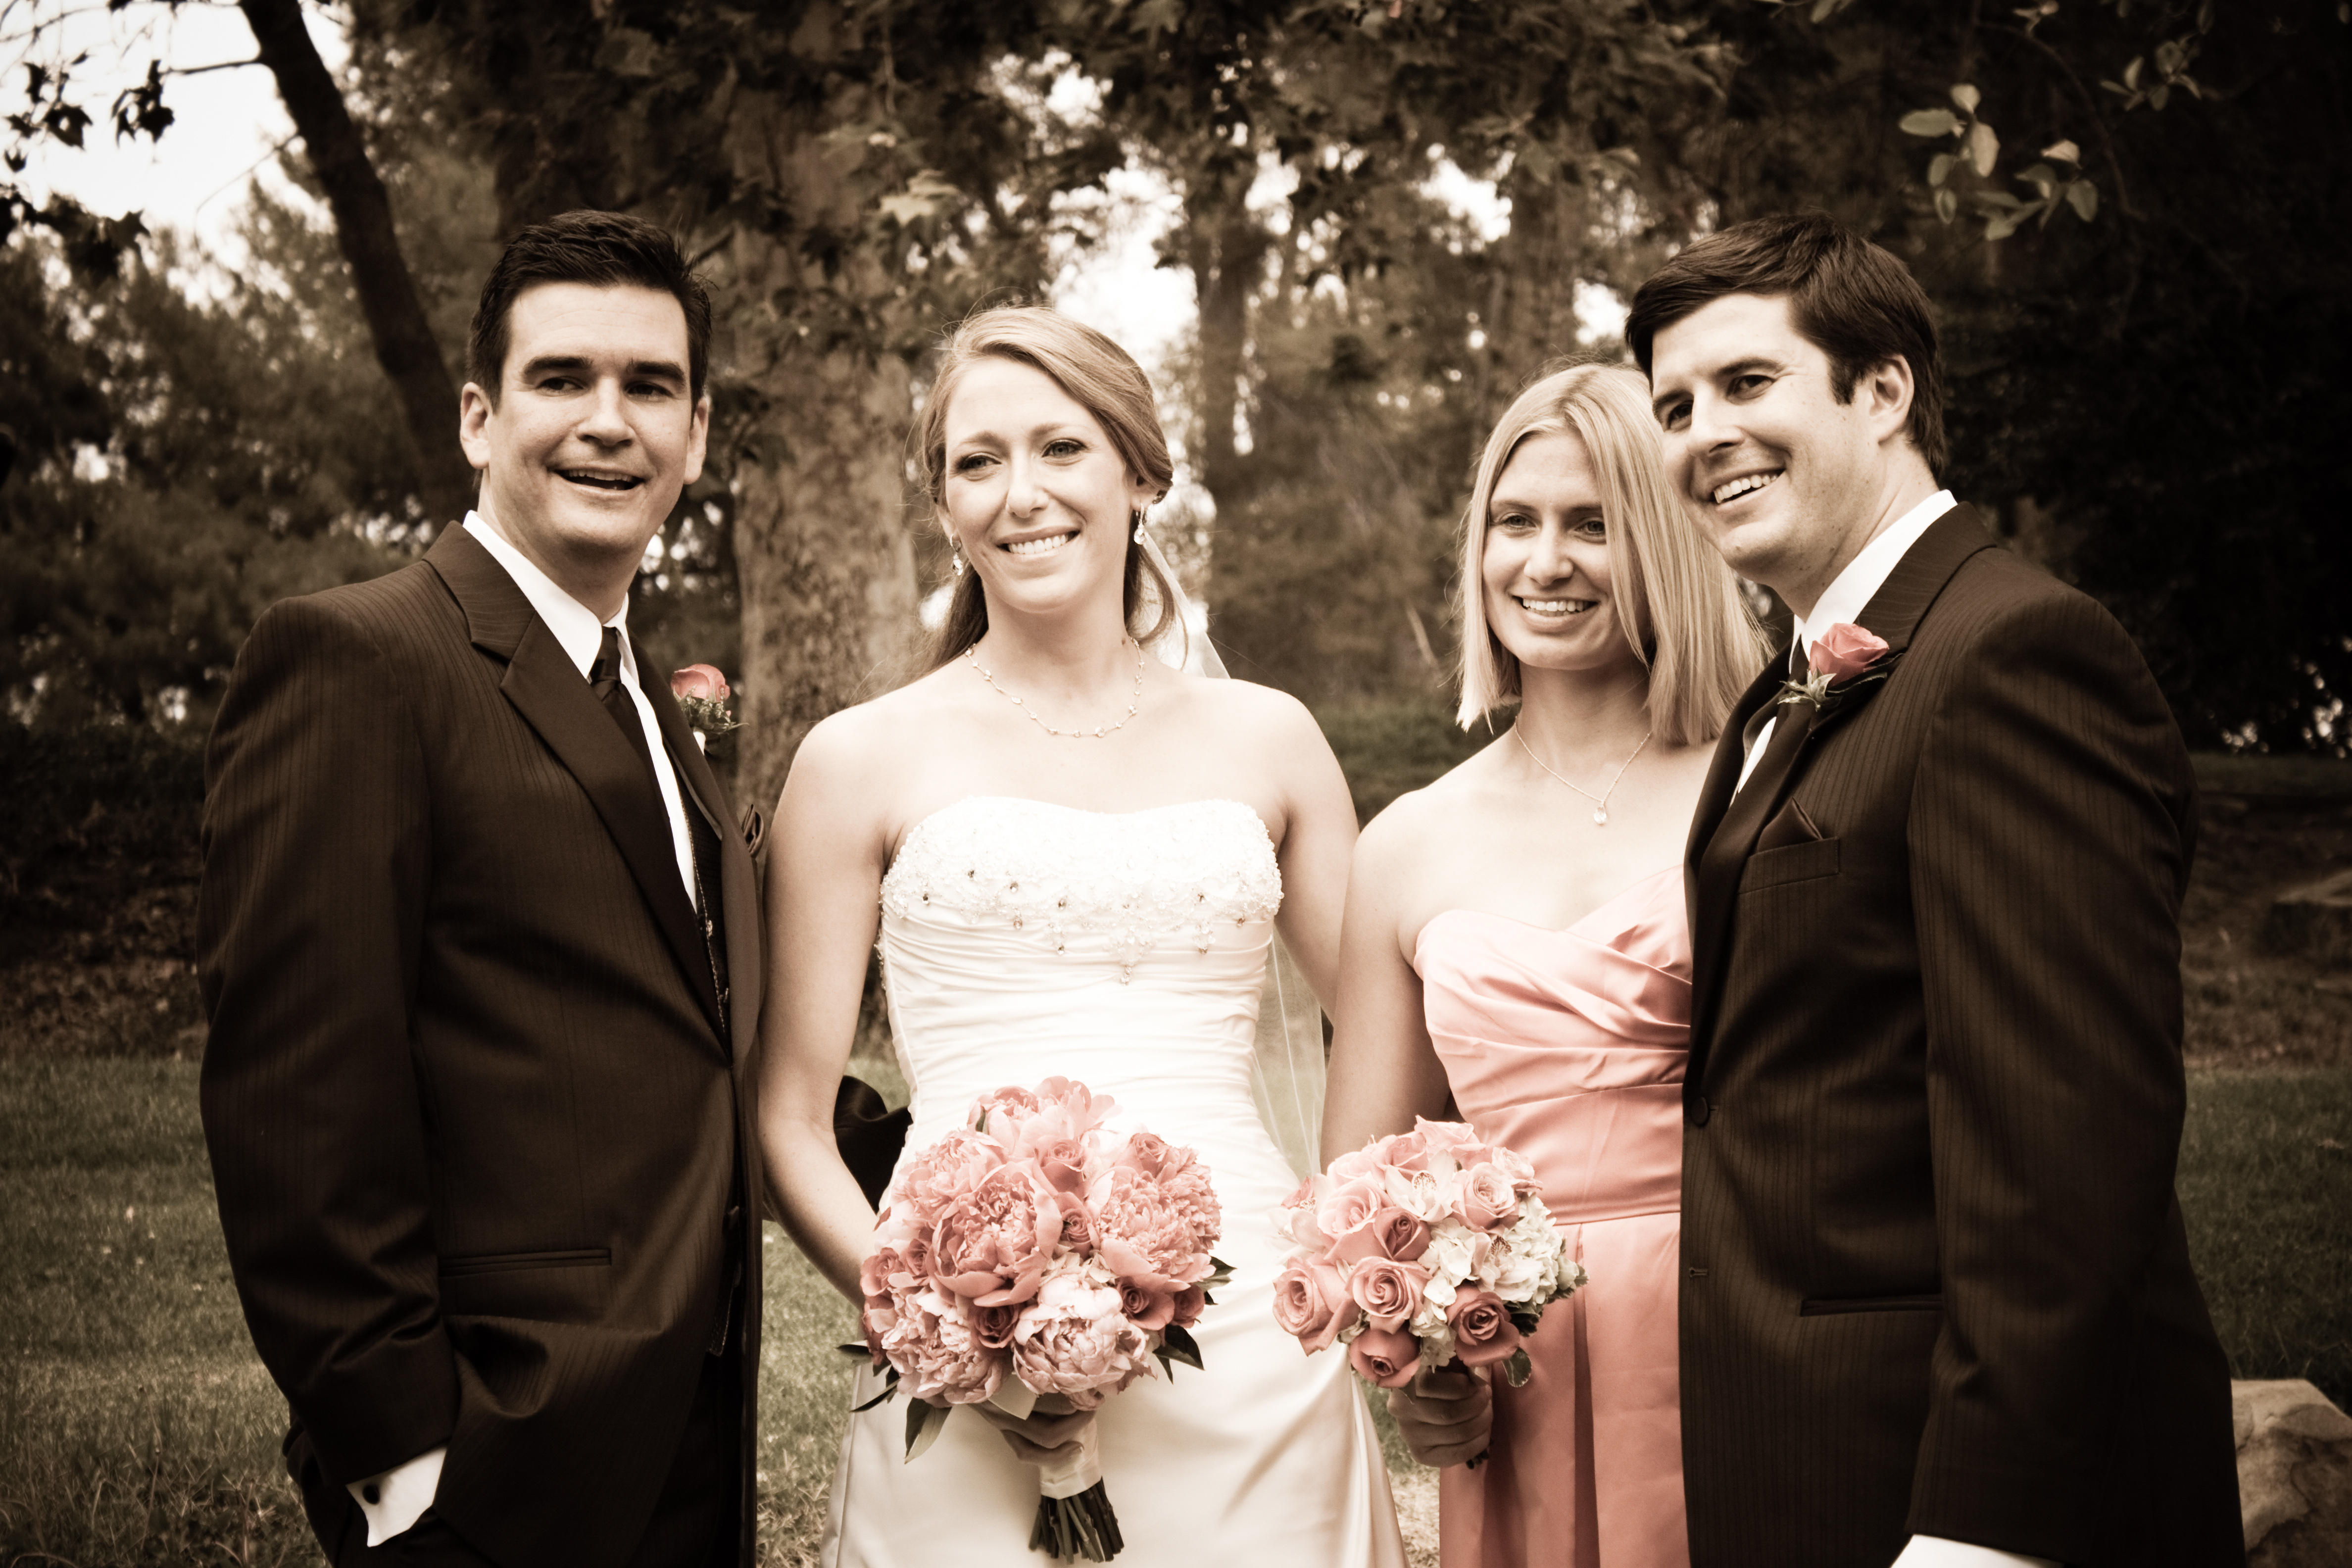 Bride, Groom, Wedding, Of, Couple, Honor, Maid, Man, Best, Allen taylor photography